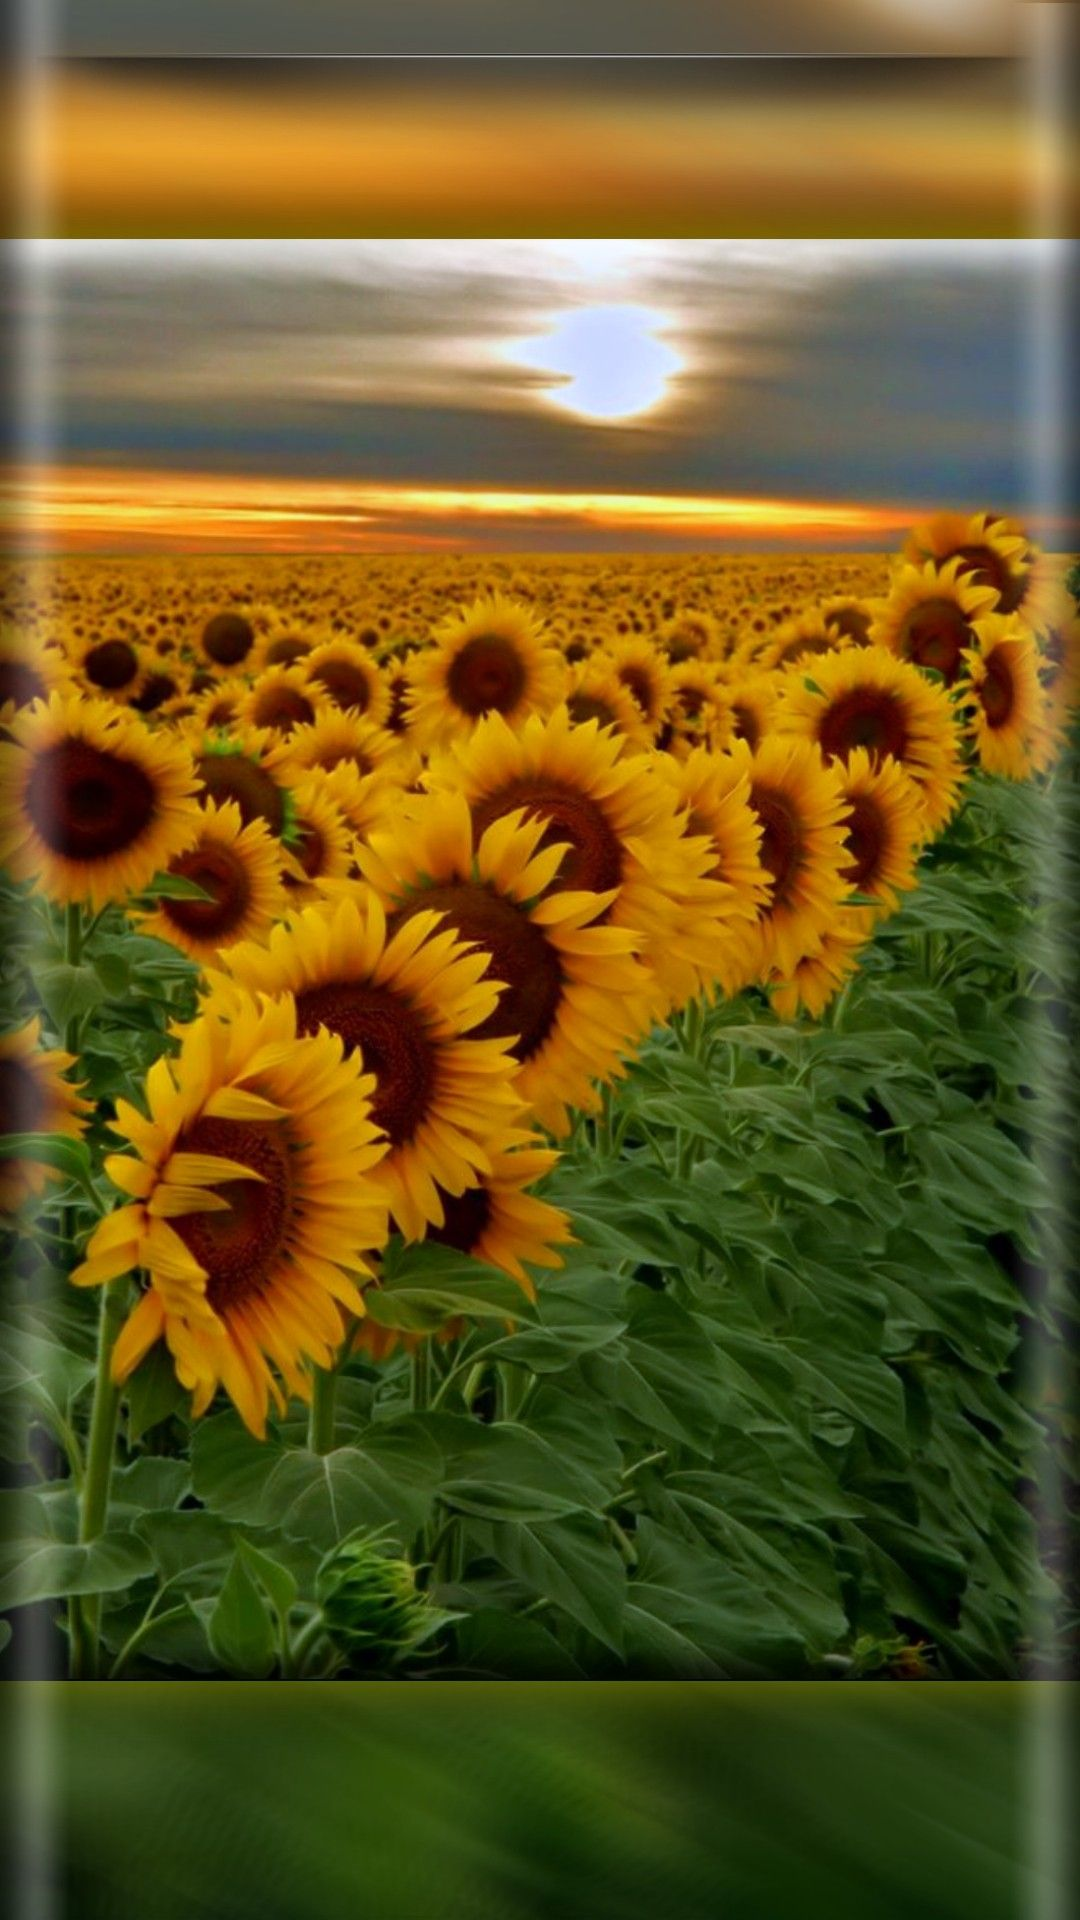 pinlena kas on wallpaper | pinterest | sunflowers, flowers and